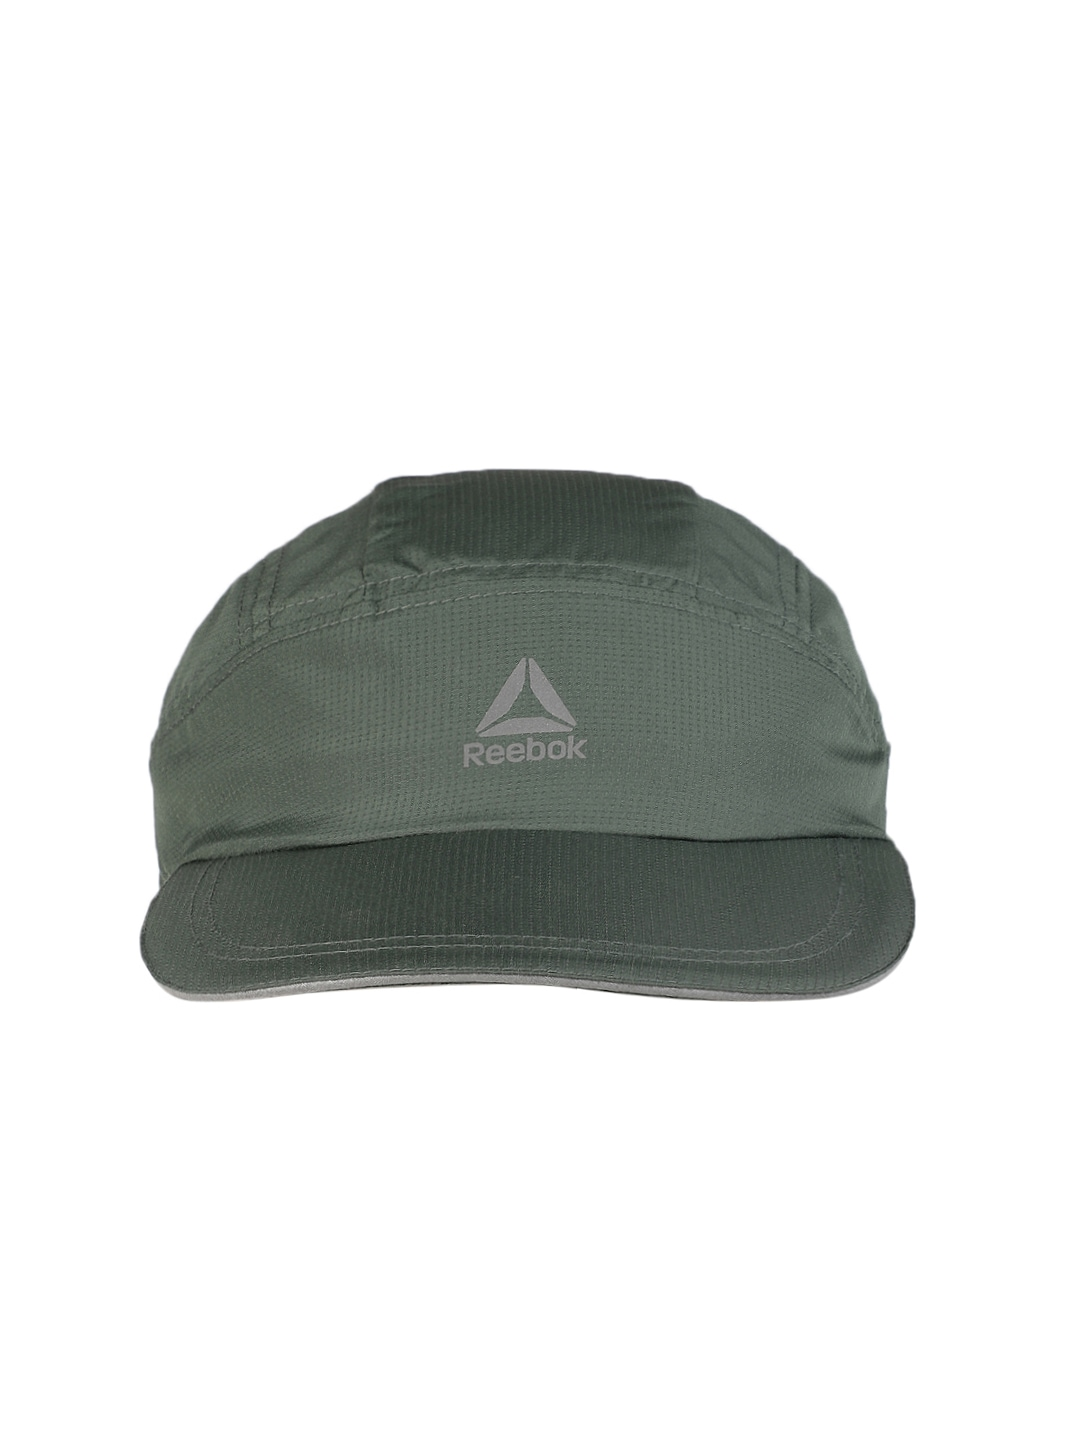 e07c8f31e9a Indian Cap Caps Jersey Jackets - Buy Indian Cap Caps Jersey Jackets online  in India